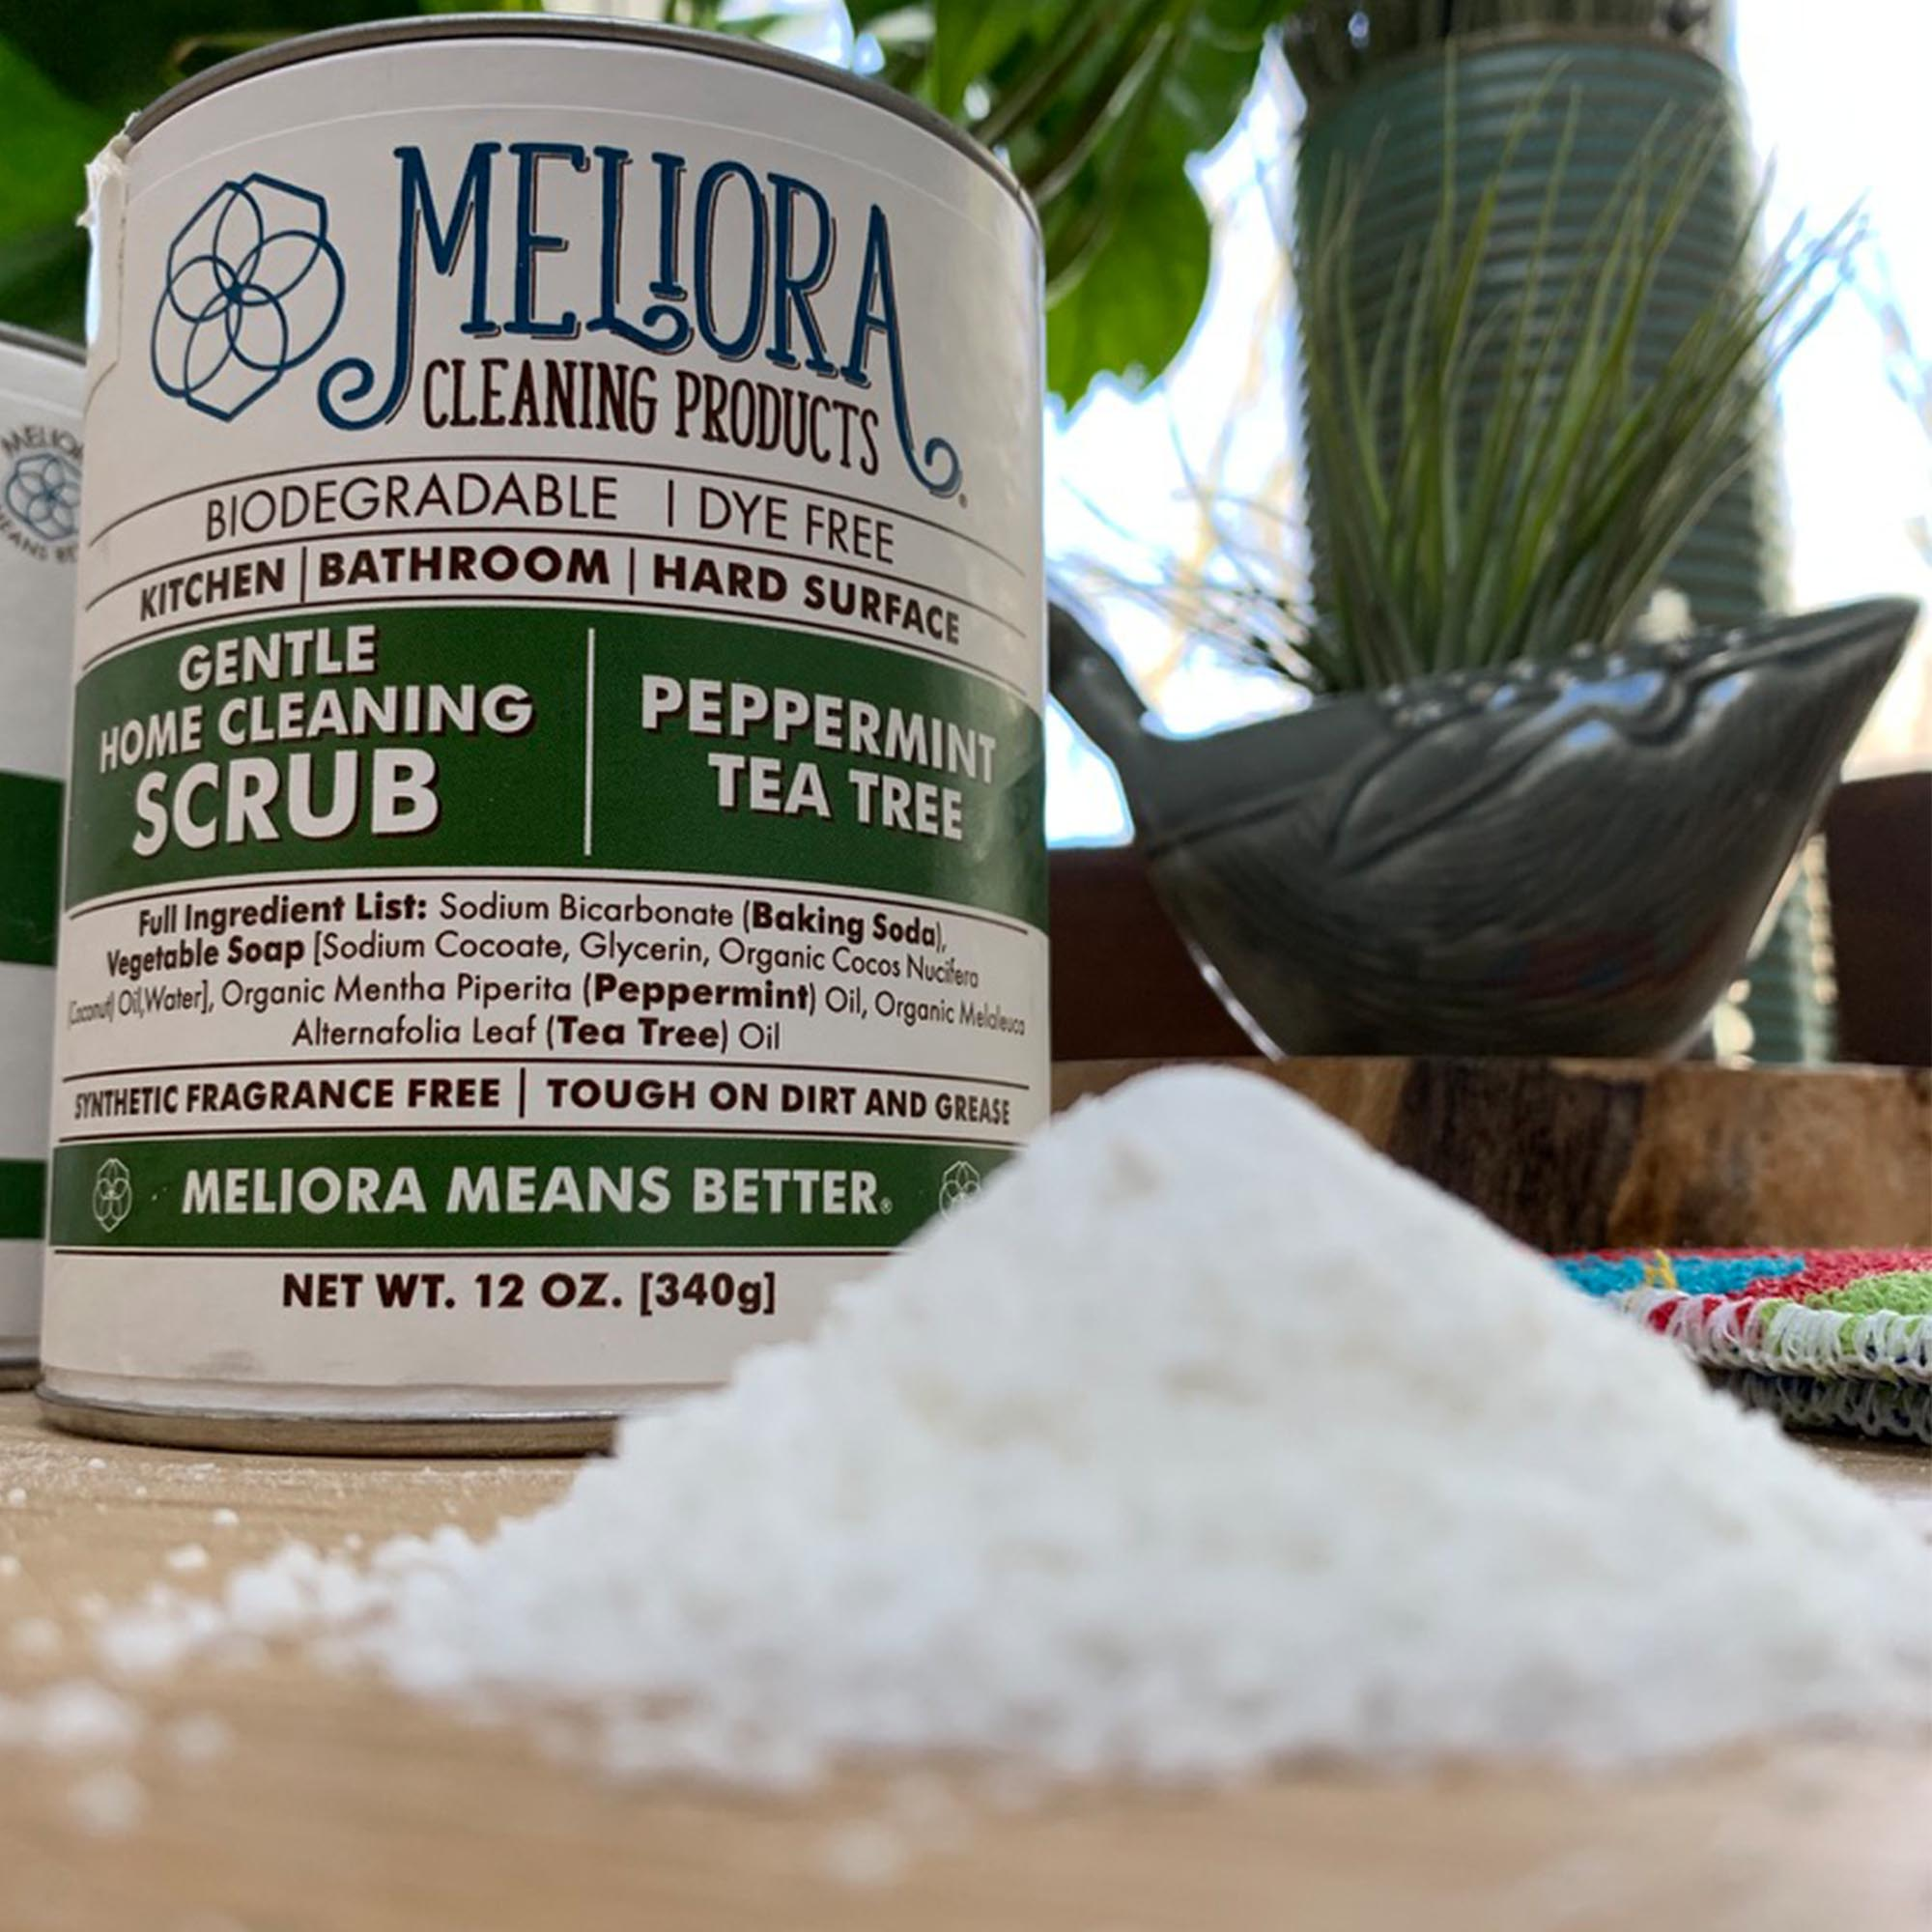 12 oz meliora cleaning scrub can, peppermint tea tree green, soap shavings in foreground